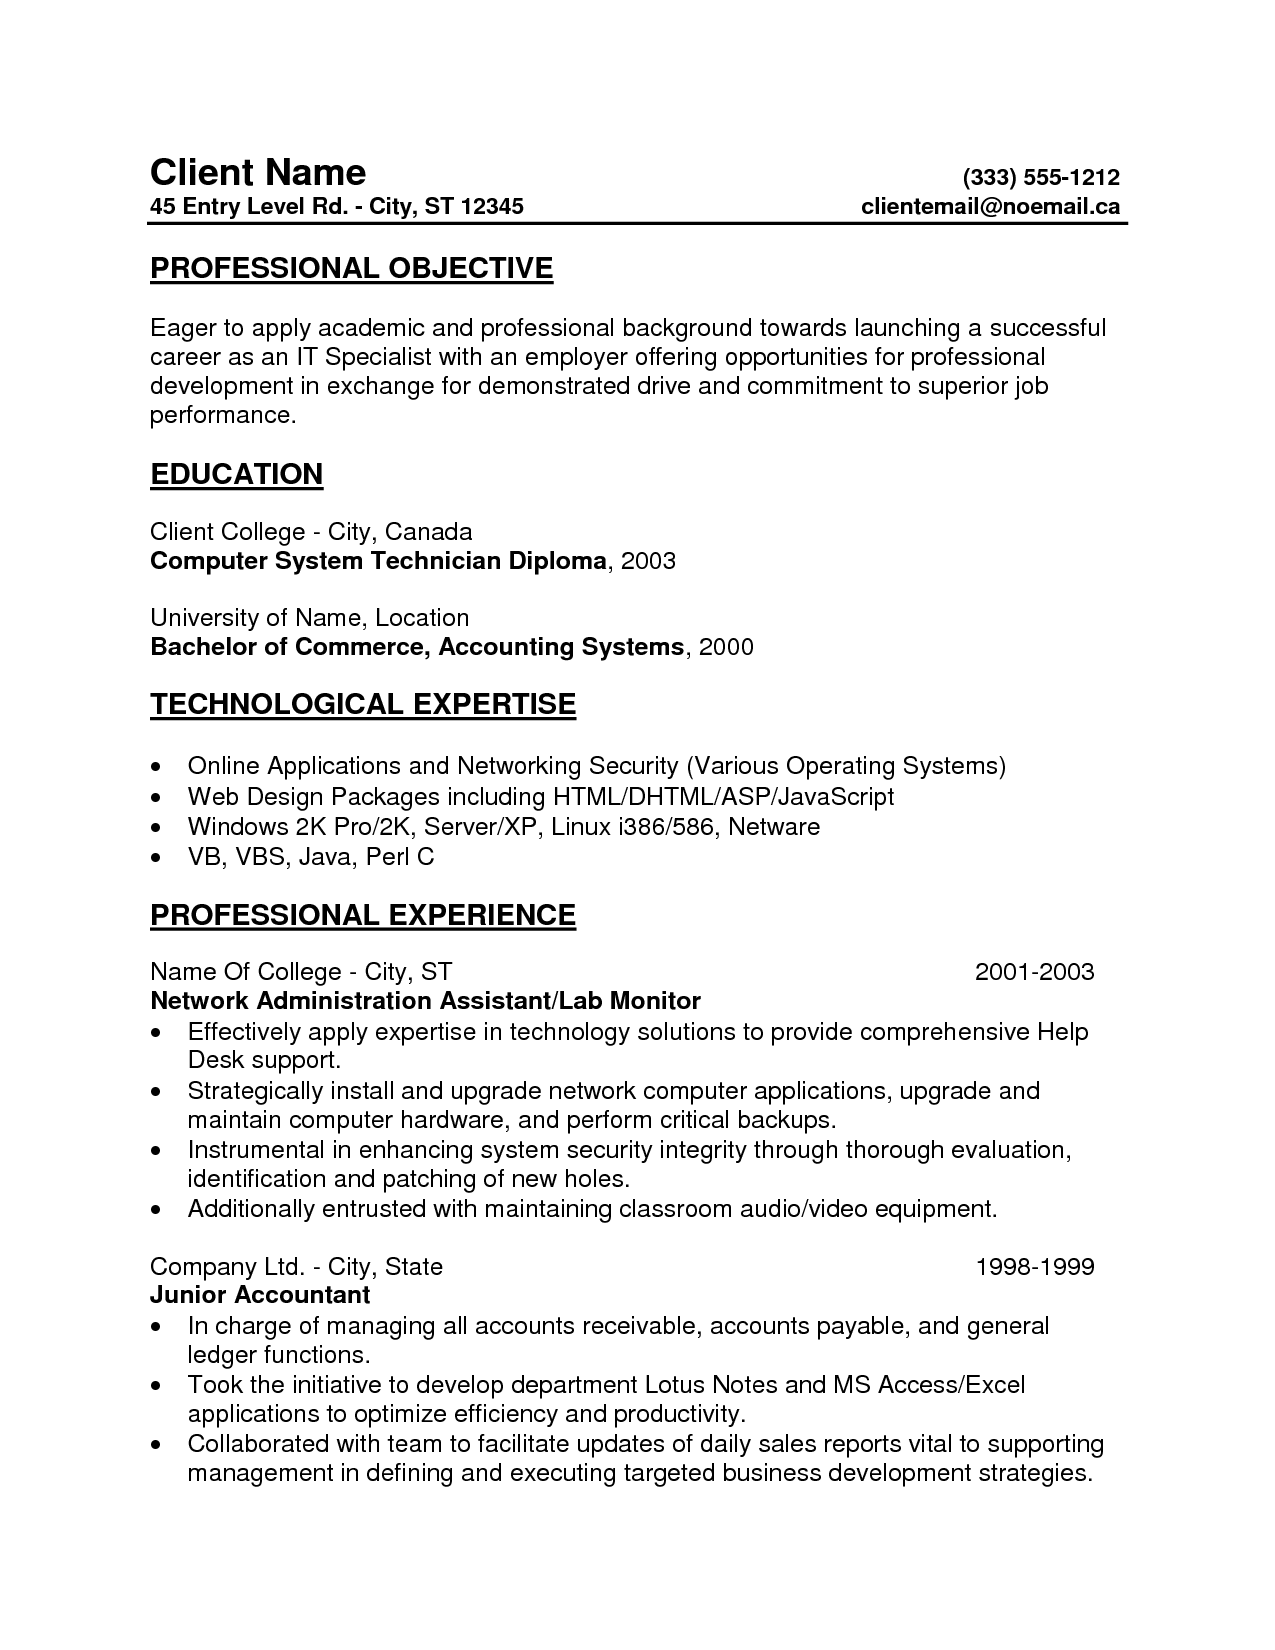 Employment Application Its Fashion Metro Resume For Pizza Hut